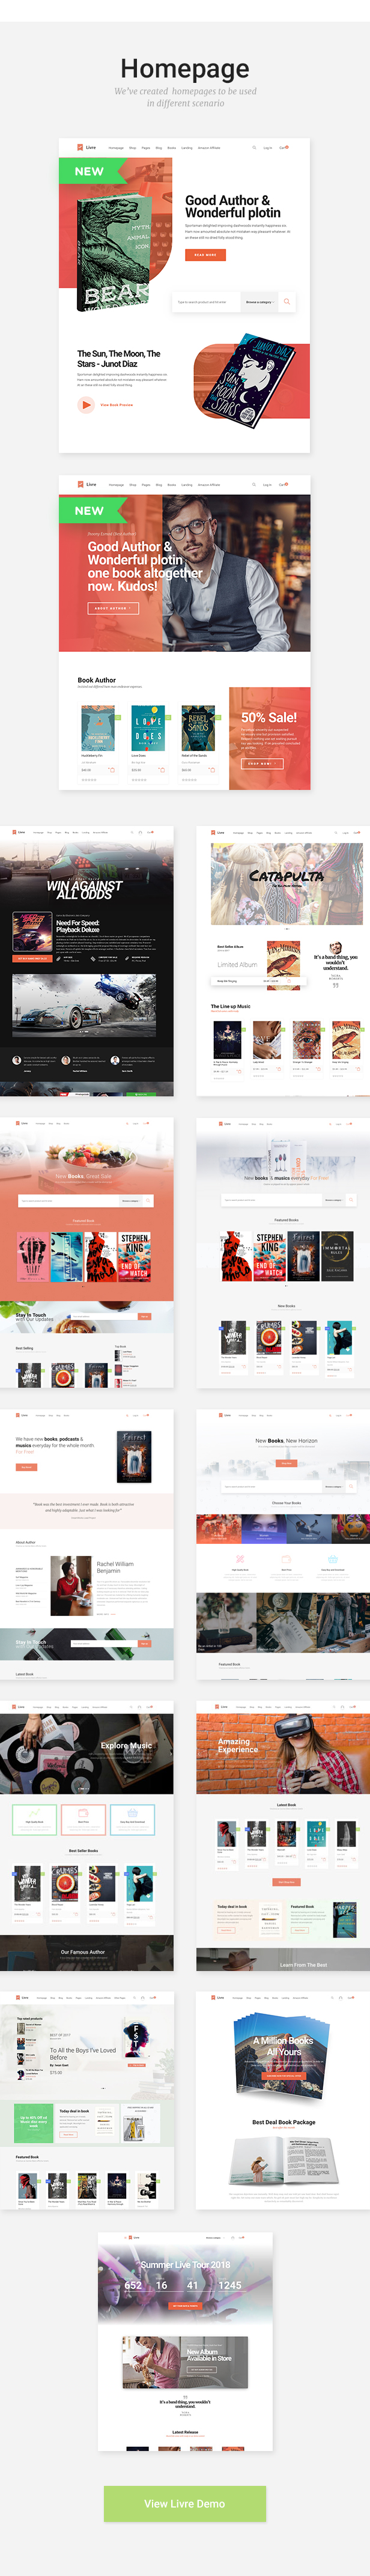 Livre - WooCommerce Theme For Book Store - 2